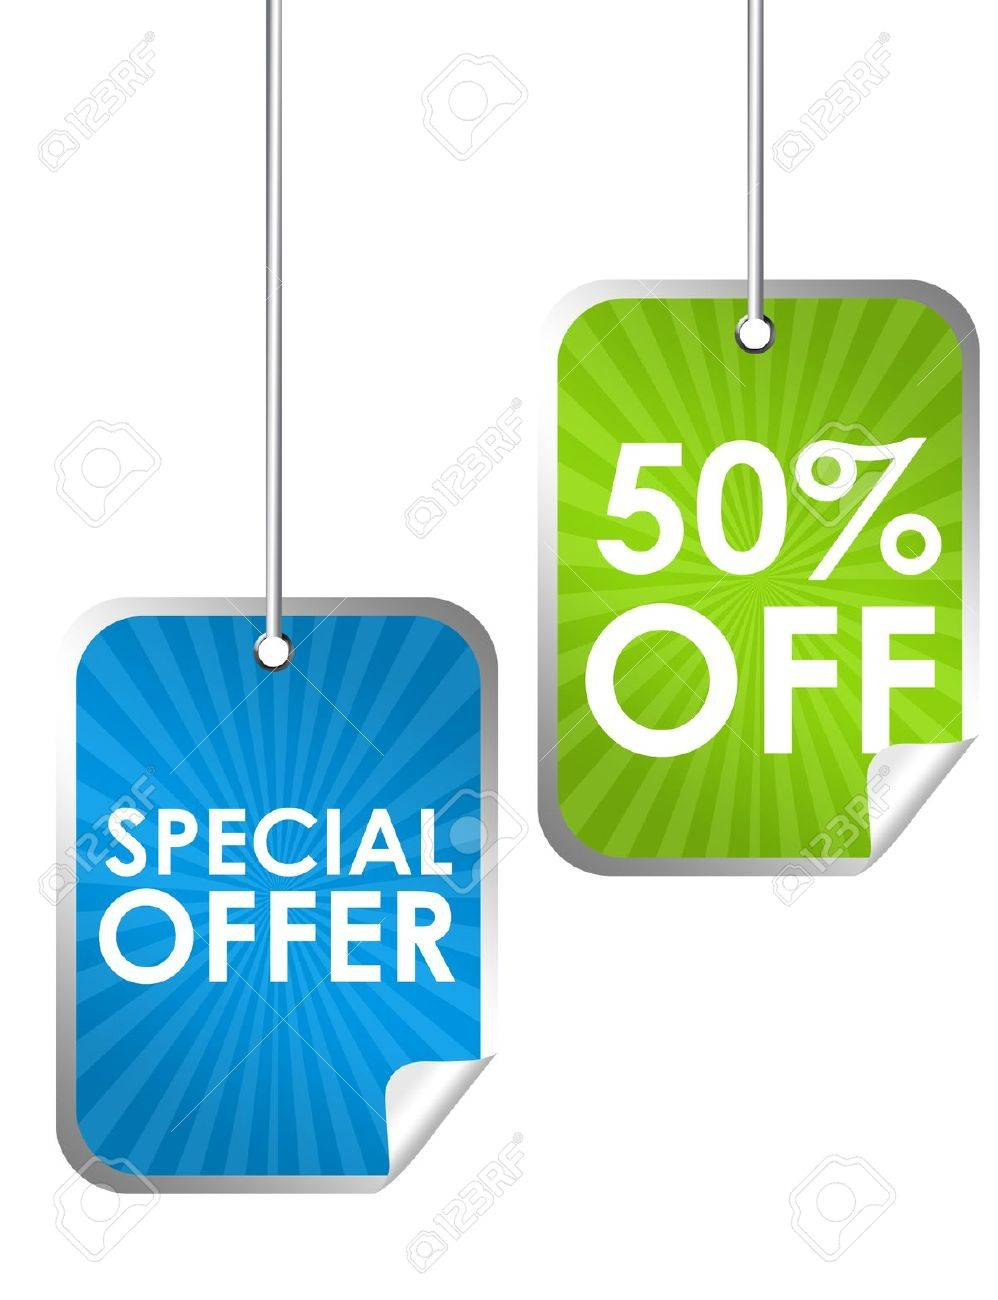 blue and green special offer labels isolated over white background Stock Photo - 9926535